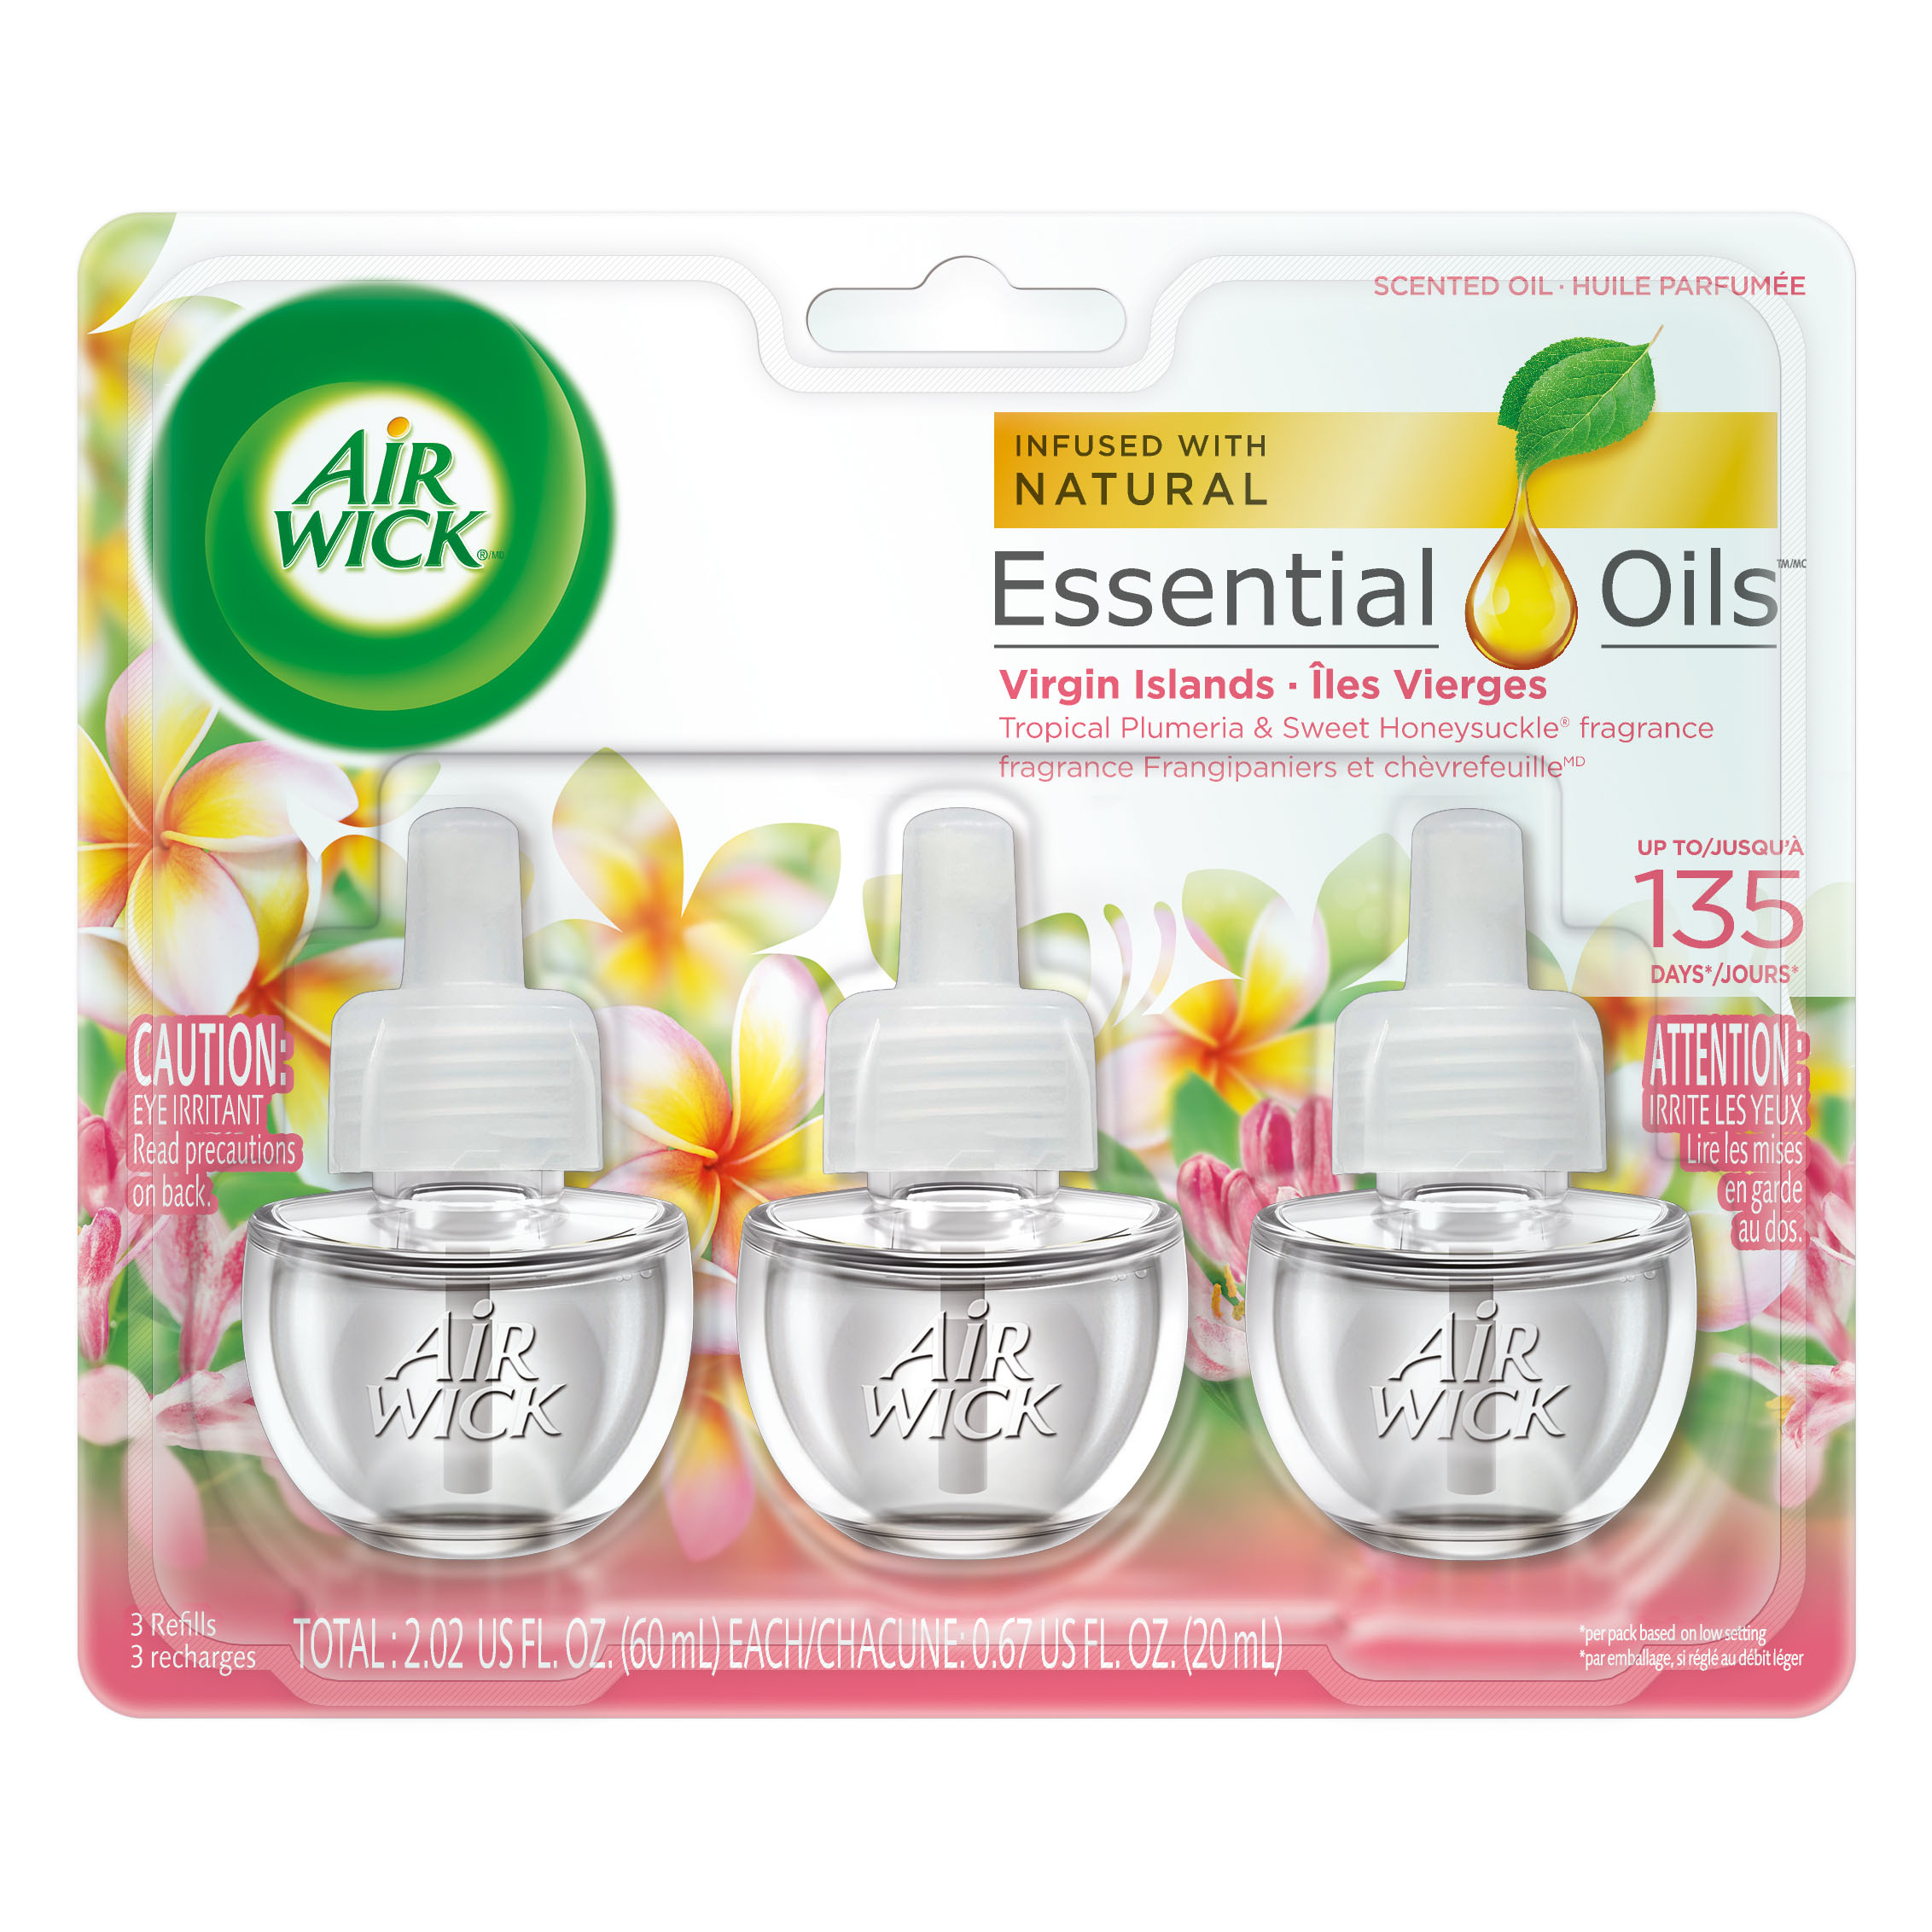 Air Wick Scented Oil 3 Refills, Virgin Islands, (3X0.67oz), Air Freshener